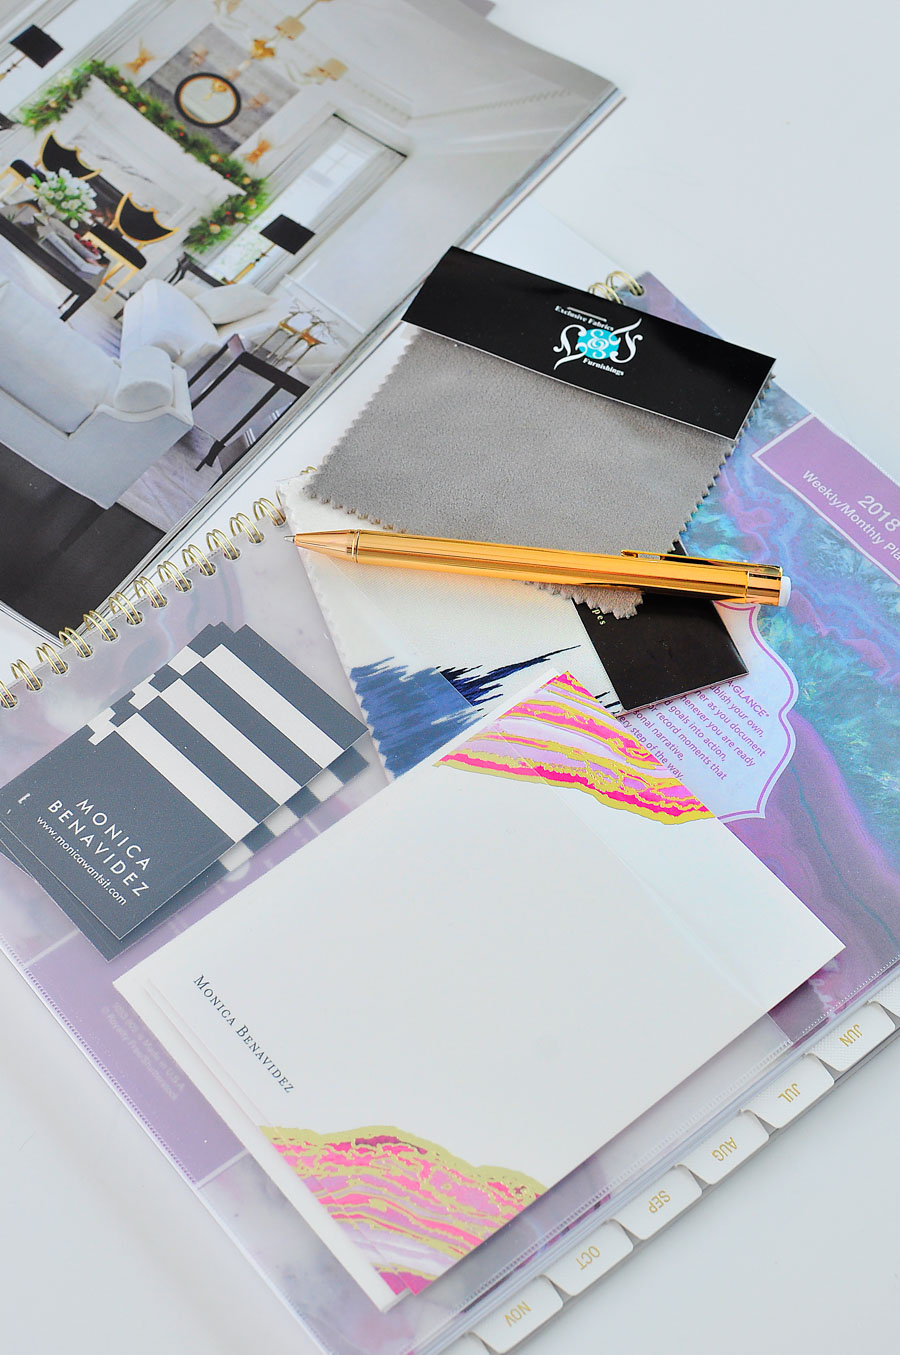 AT-A-GLANCE planner review- perfect for keeping track of appointments, goals, and events.